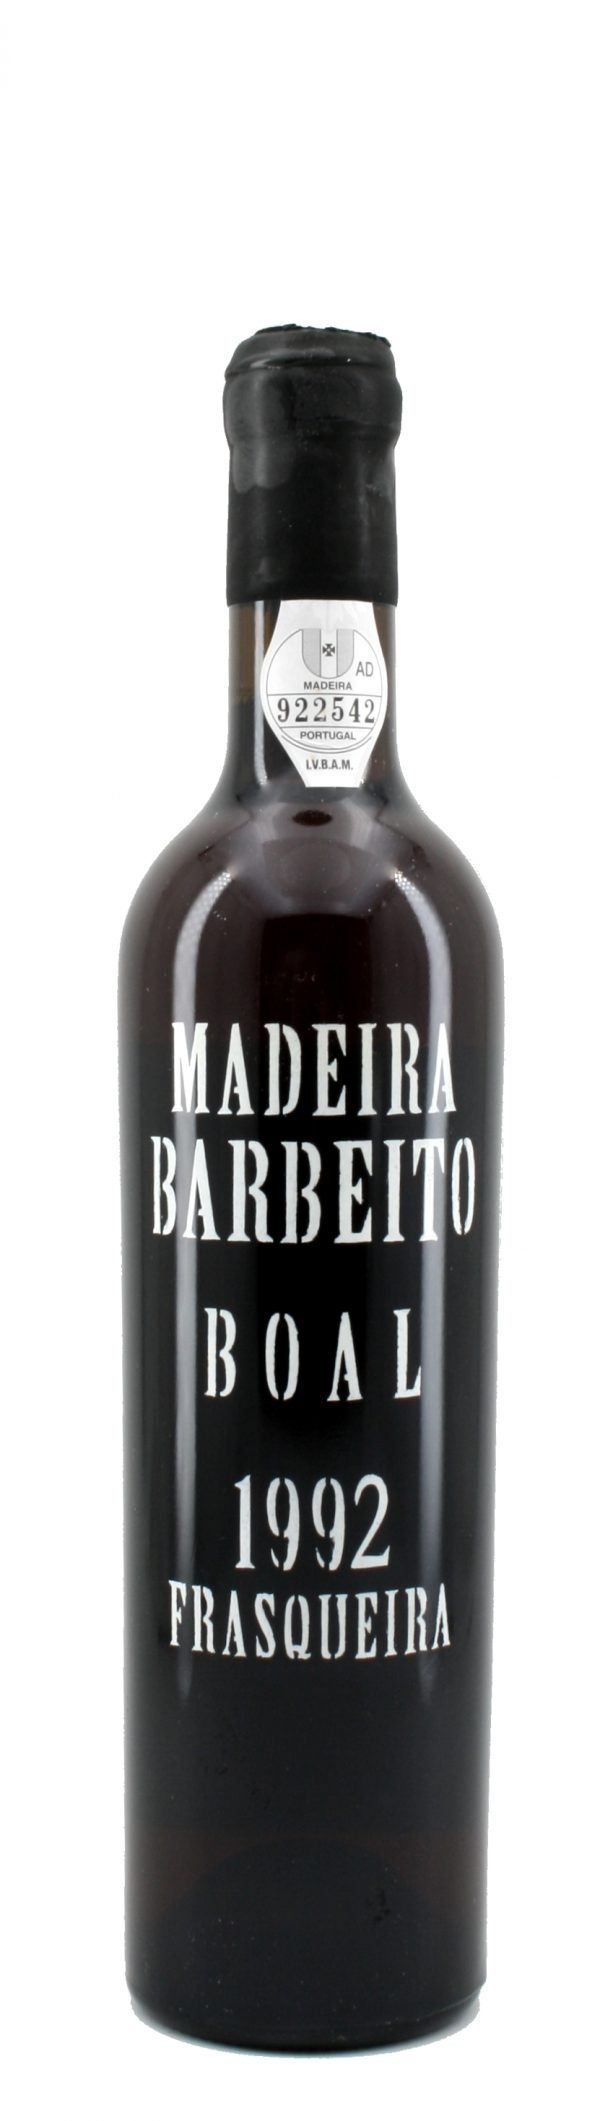 Boal Medium Sweet Madeira 1992